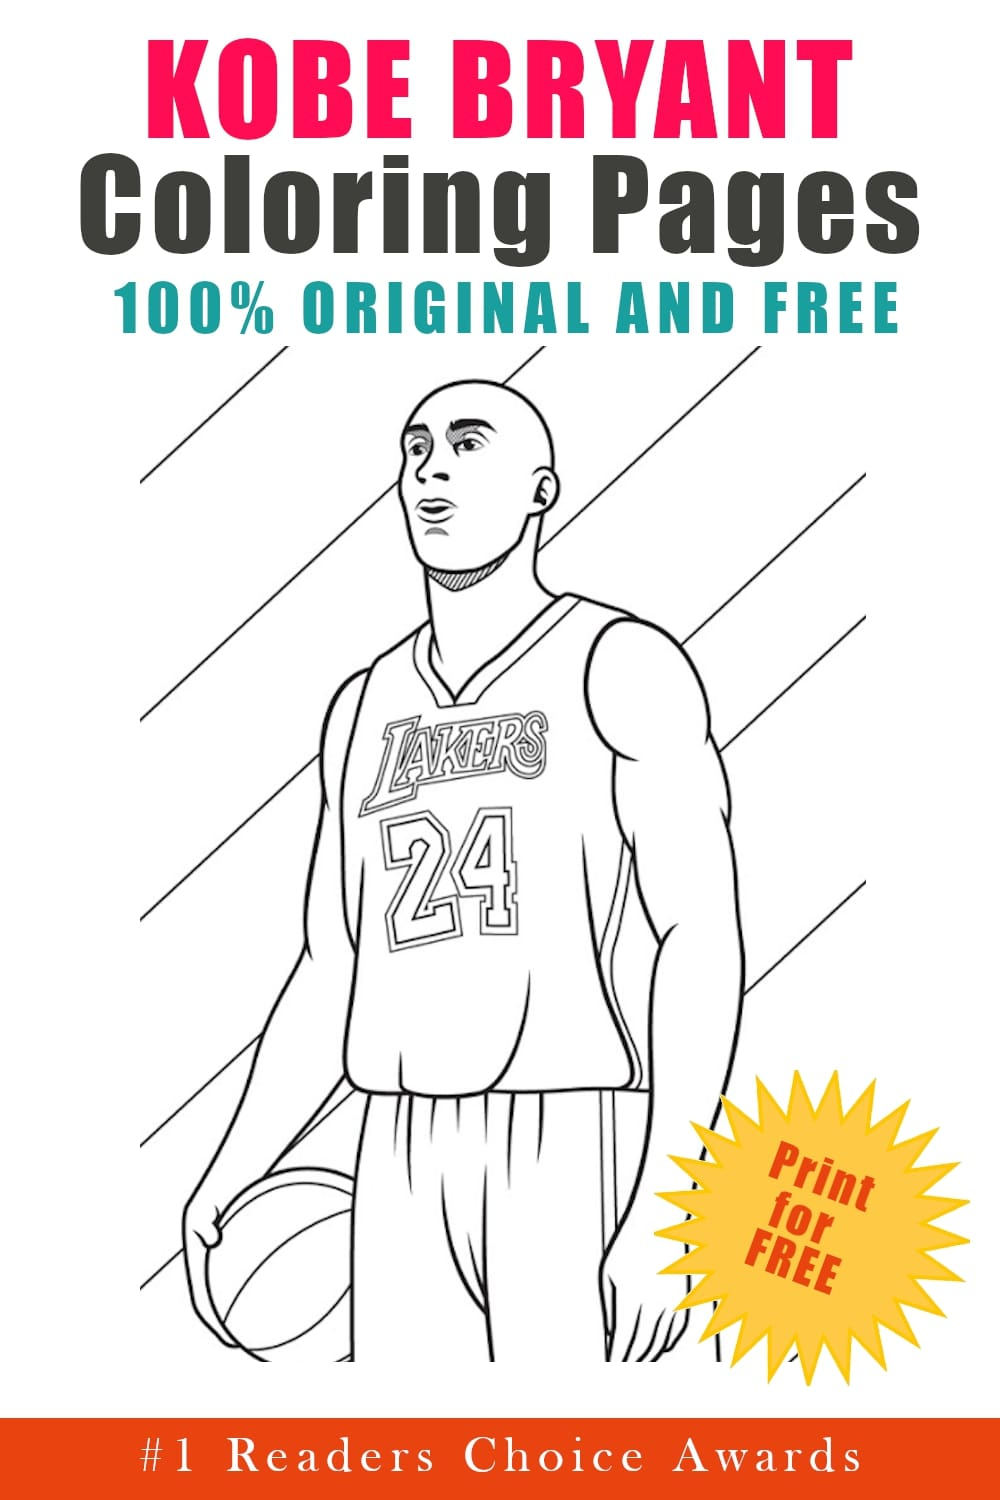 original and free kobe bryant coloring pages